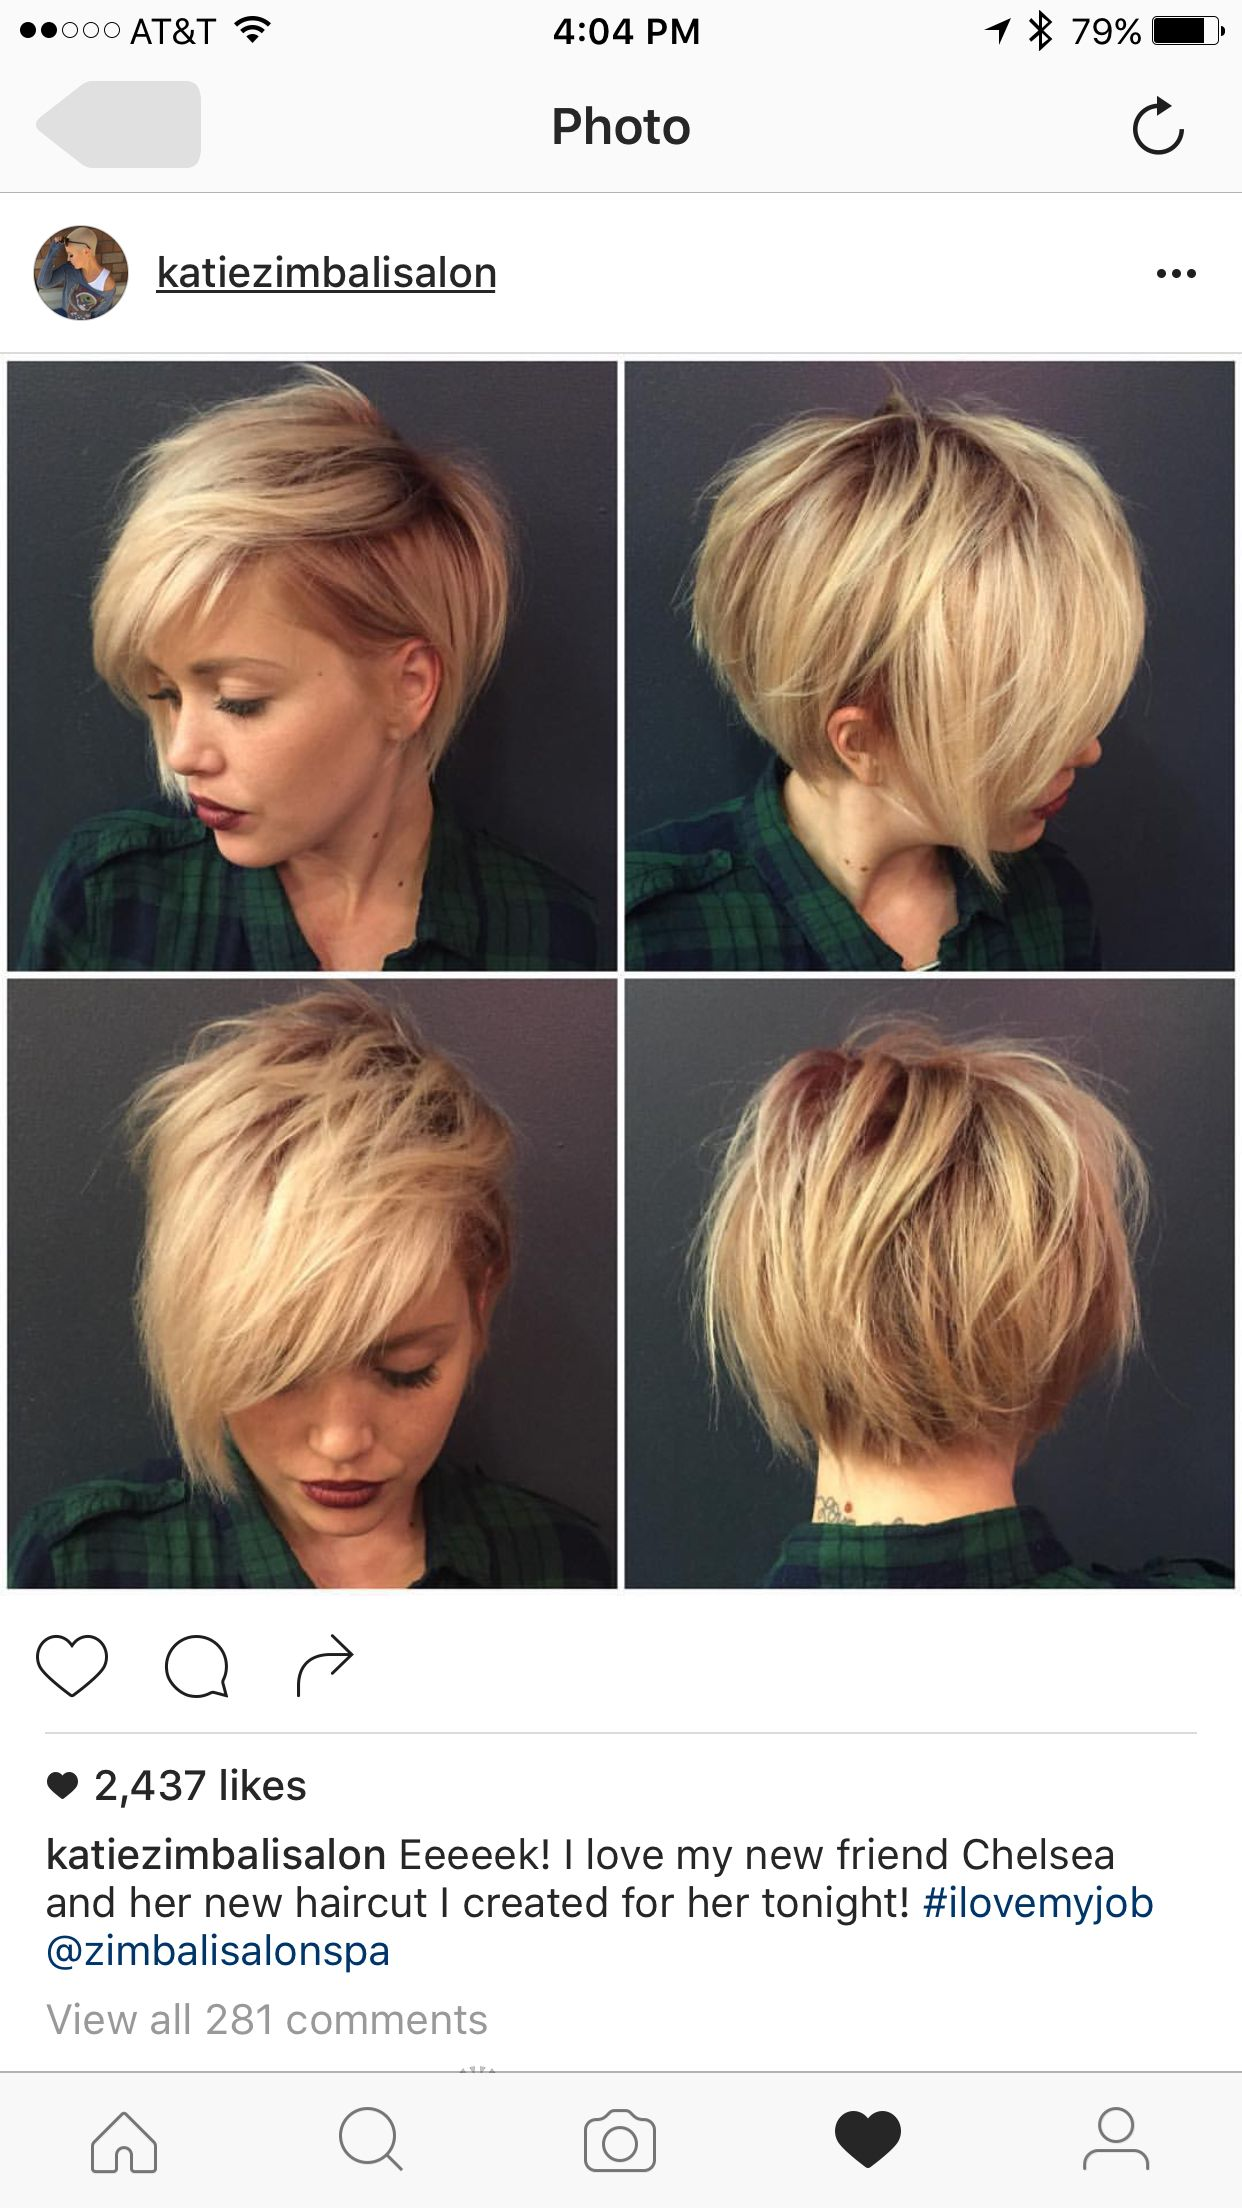 Pin by Tia Klinger on hurrr  Pinterest  Haircuts Hair cuts and